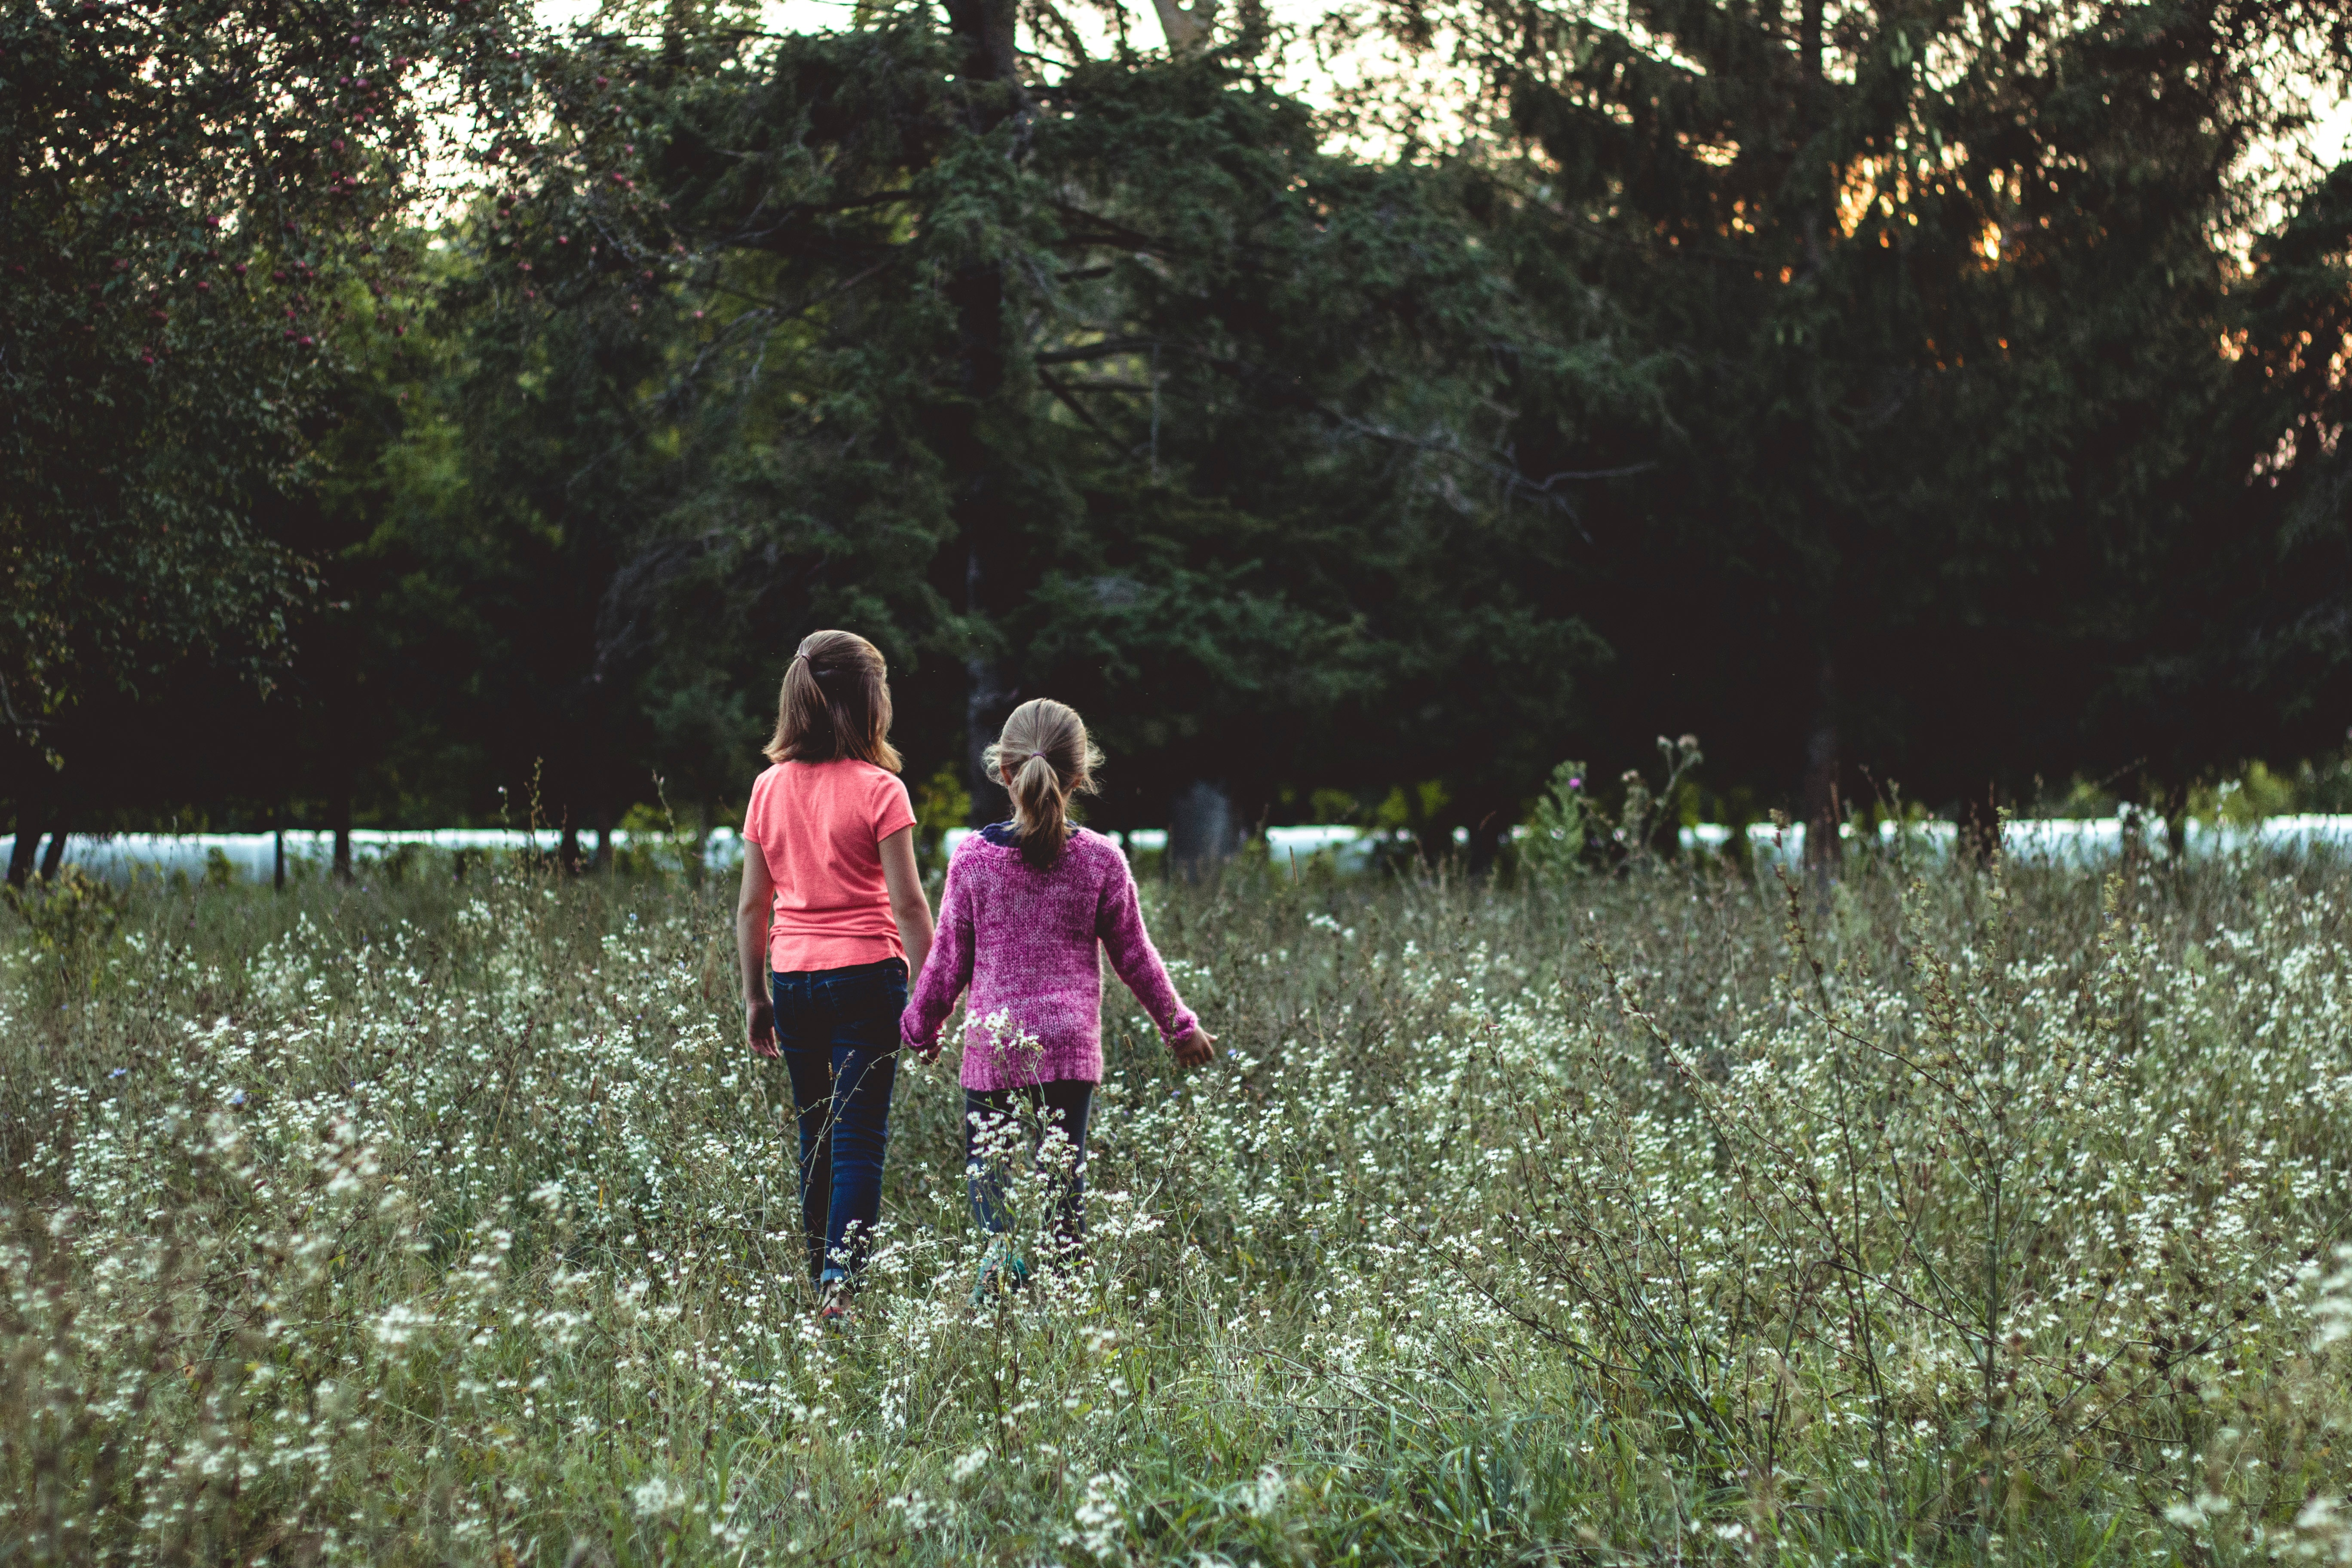 145947 download wallpaper Children, Miscellanea, Miscellaneous, Field, Stroll, Friends screensavers and pictures for free